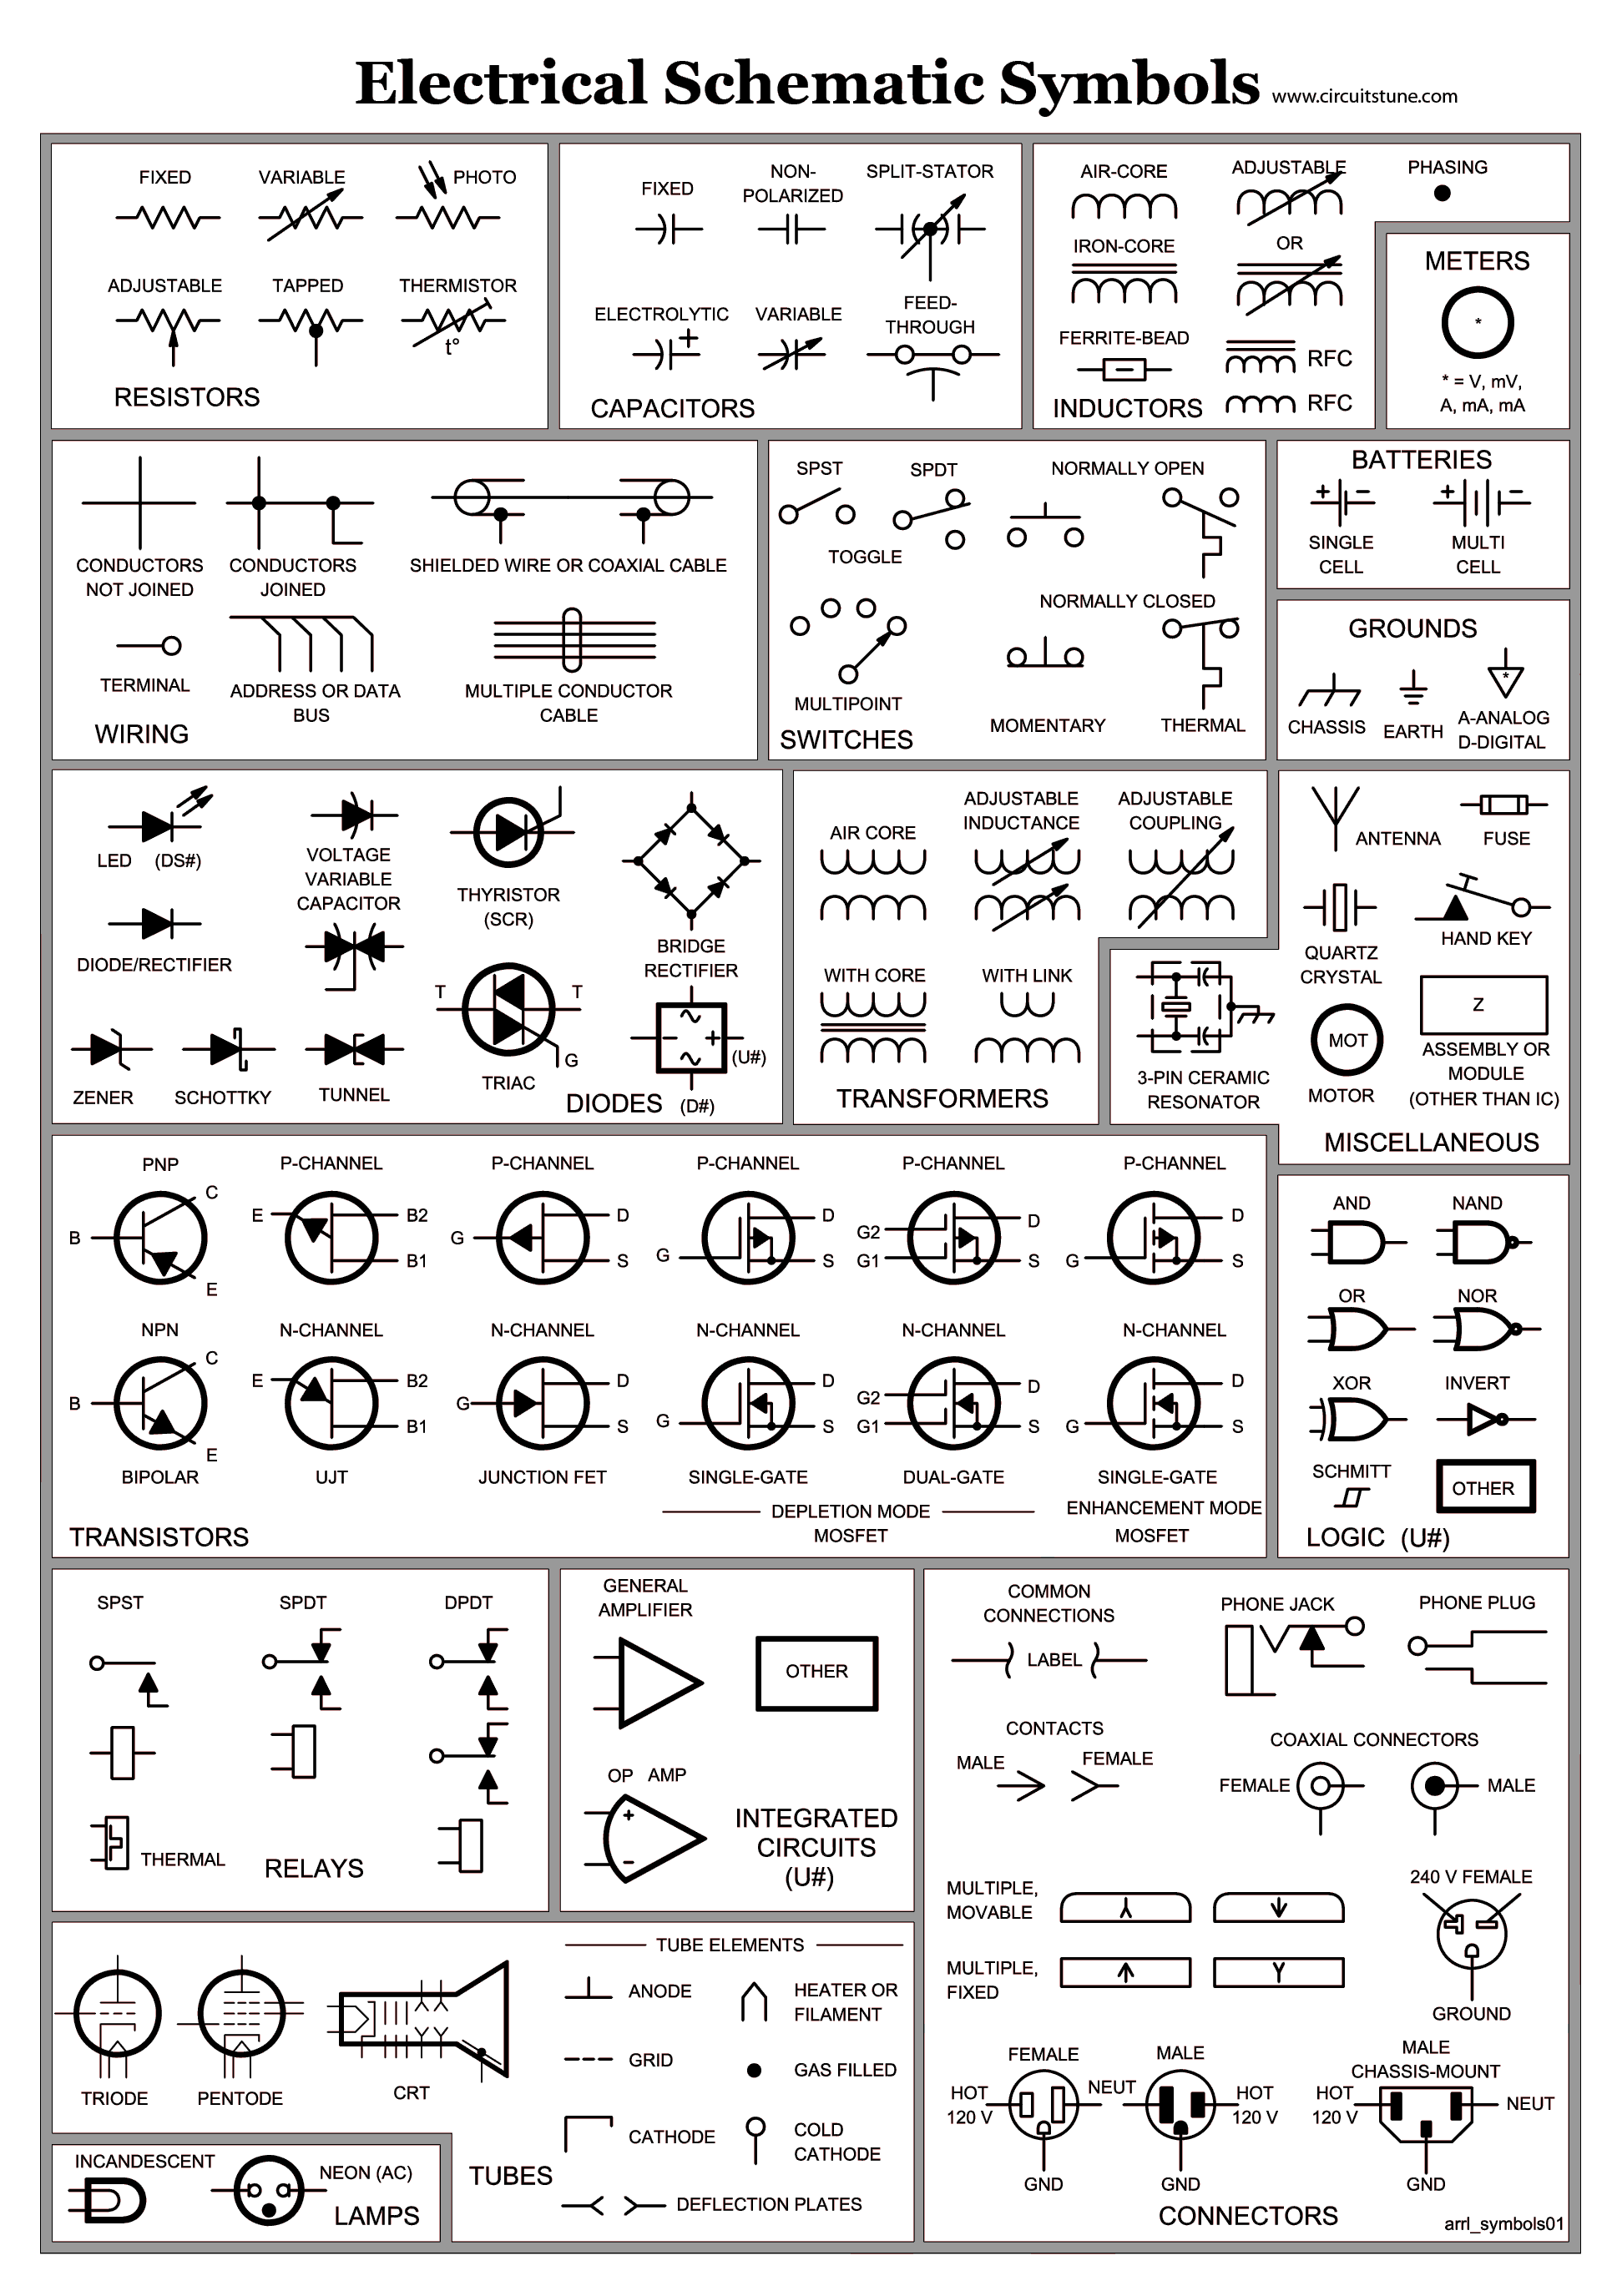 medium resolution of electrical schematic symbols wire diagram symbols automotive wiring circuit diagram symbols electrical schematic symbols wire diagram